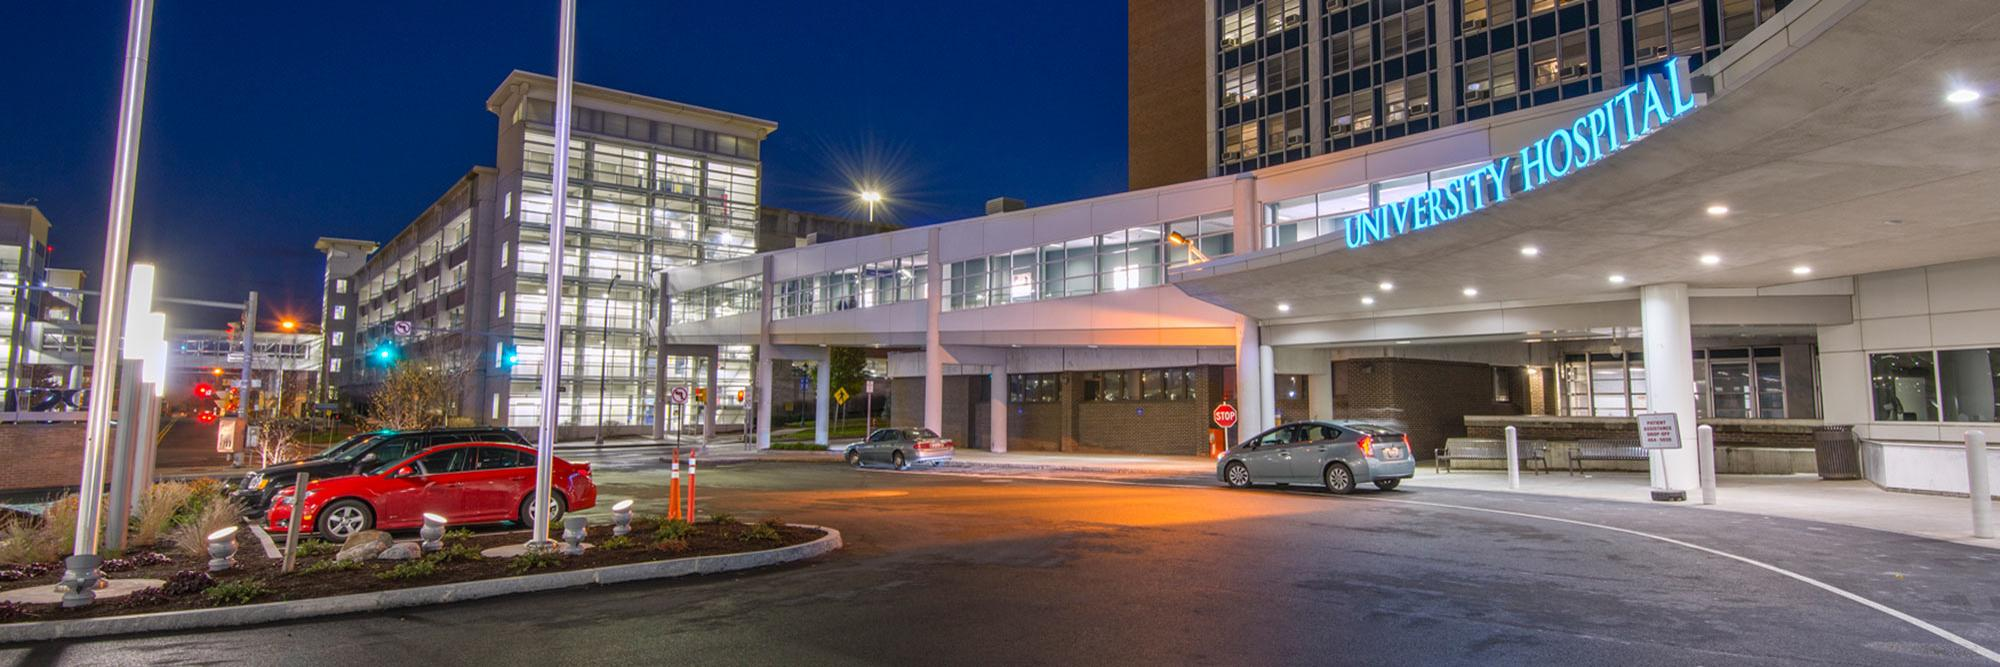 SUNY Hospital Taps Vocera to Reimagine Physician-Patient Experience with Digital Rounding